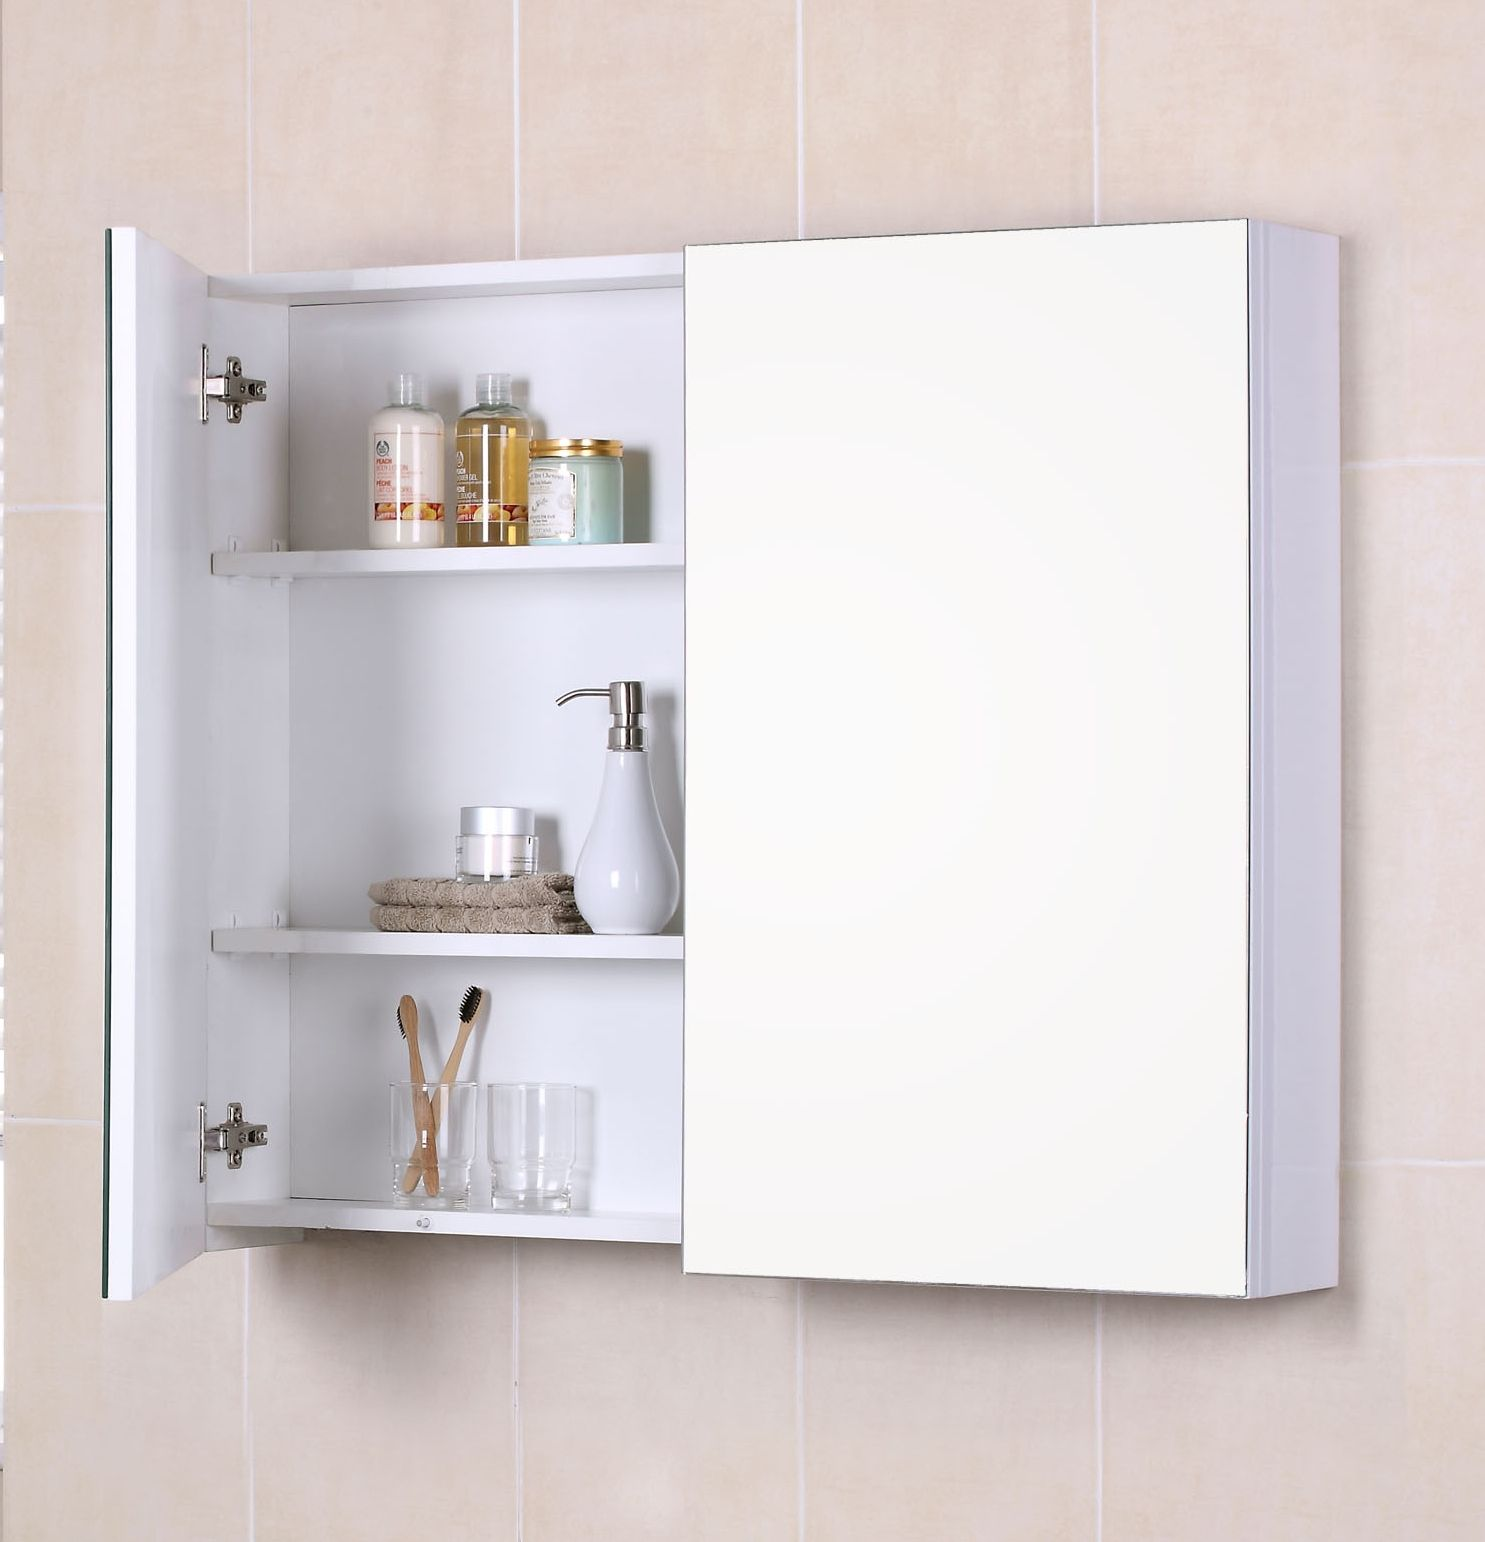 Mirrored Medicine Cabinet Lowes Stunning Small White Medicine Cabinet  Lowes Paint Colors Interior Check Design Ideas